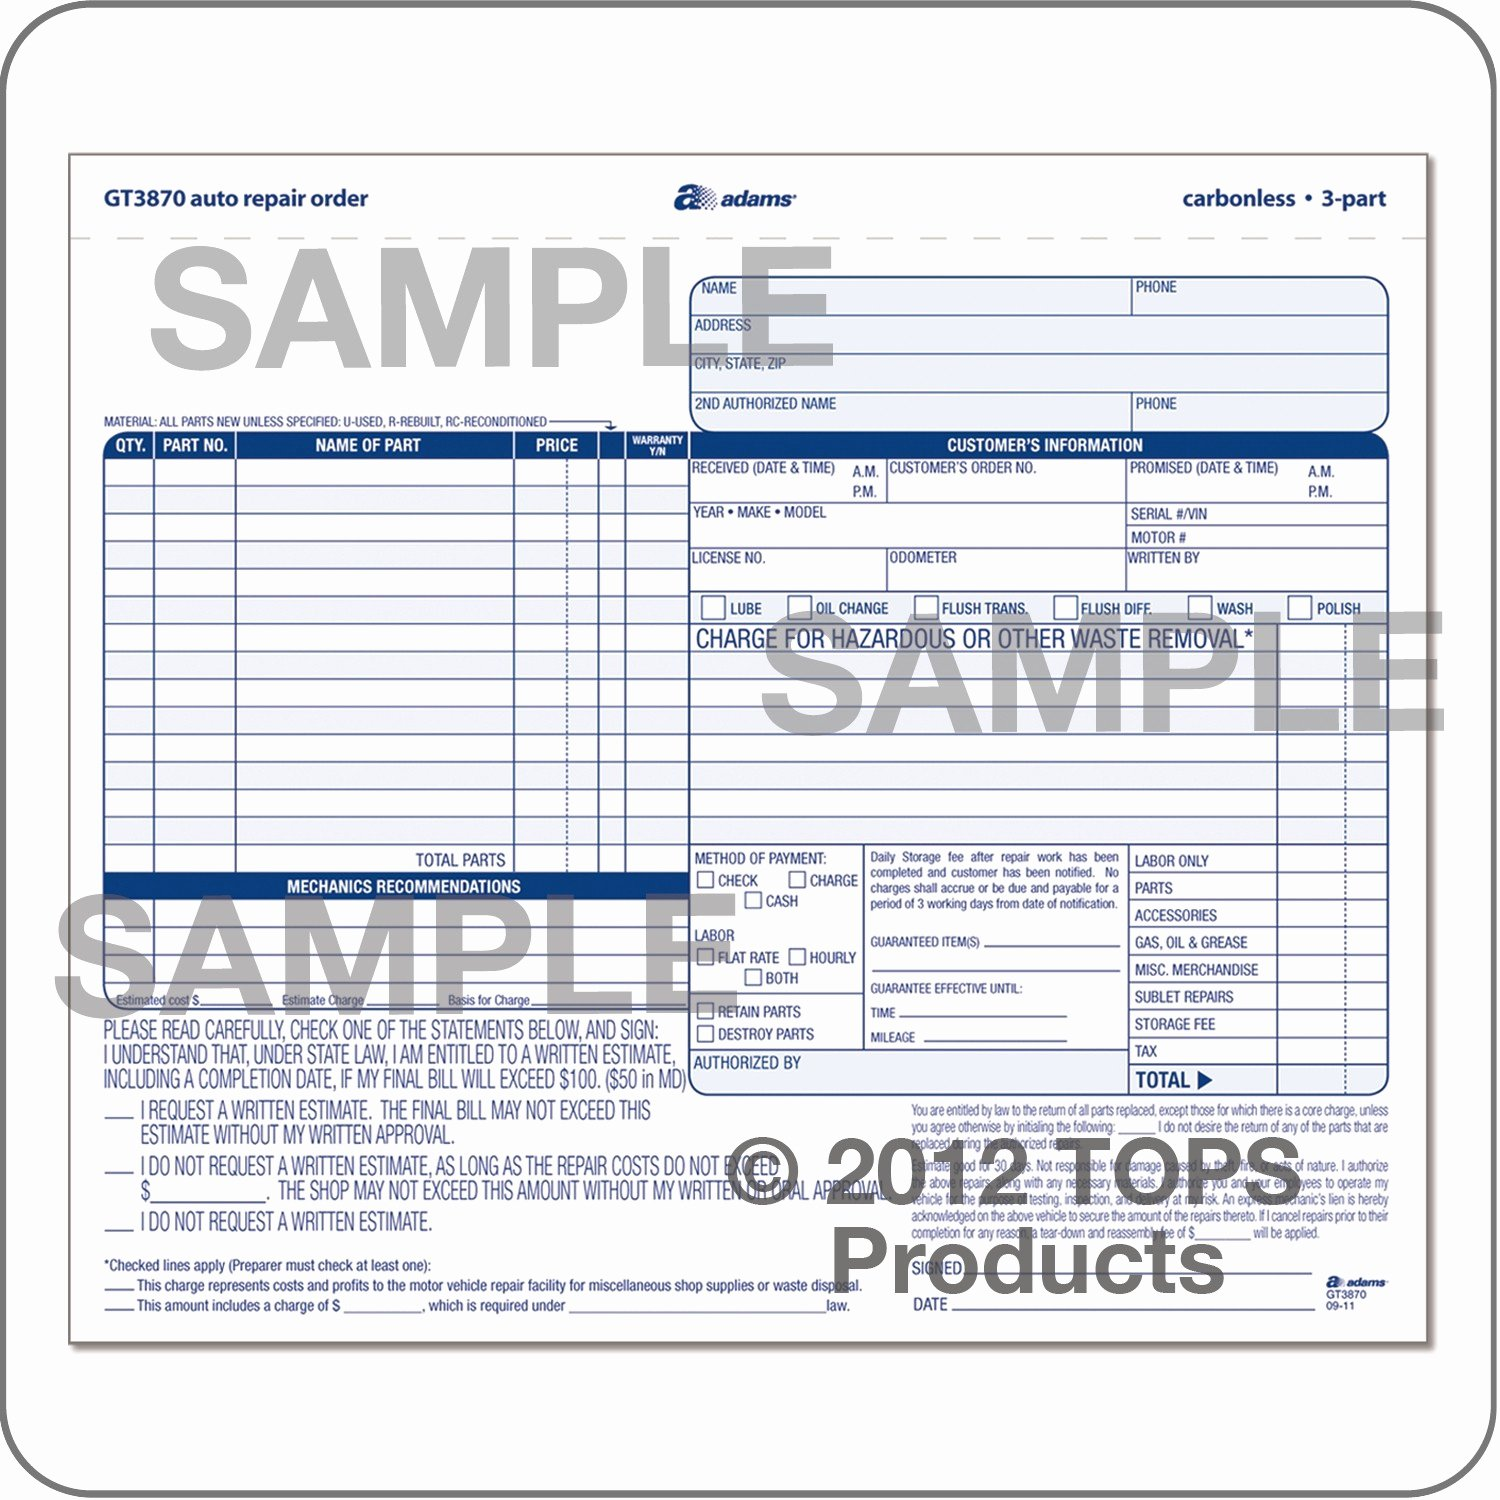 Automotive Repair Work order Template Elegant Auto Repair order 3 Part Carbonless